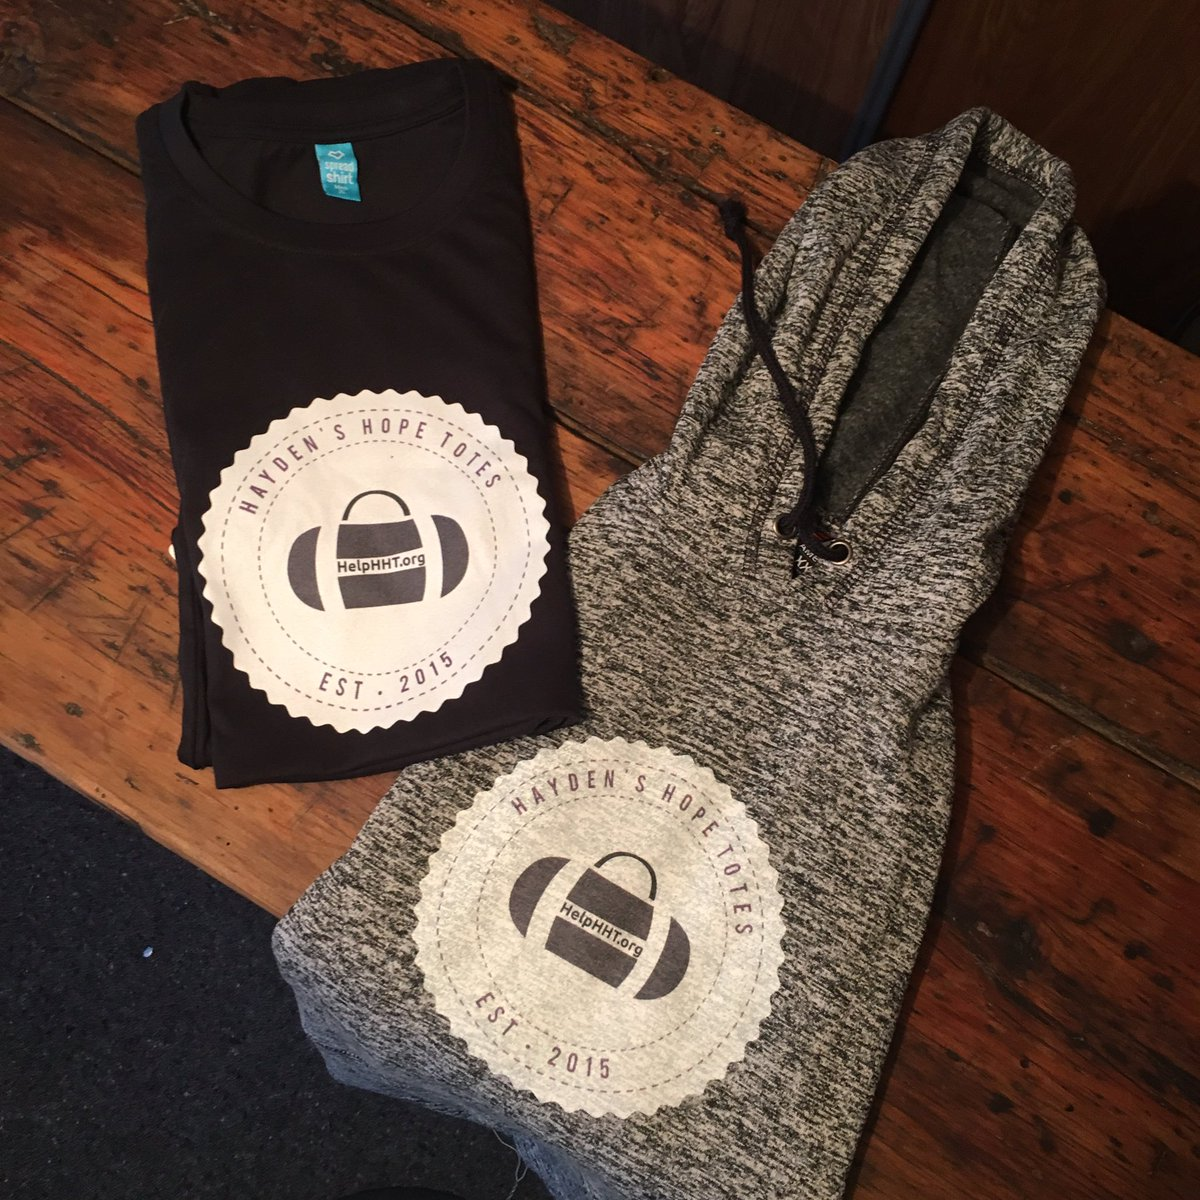 My @Haydenshopetote gear arrived! The hoodie is extremely comfortable & helps spread the word about a great cause